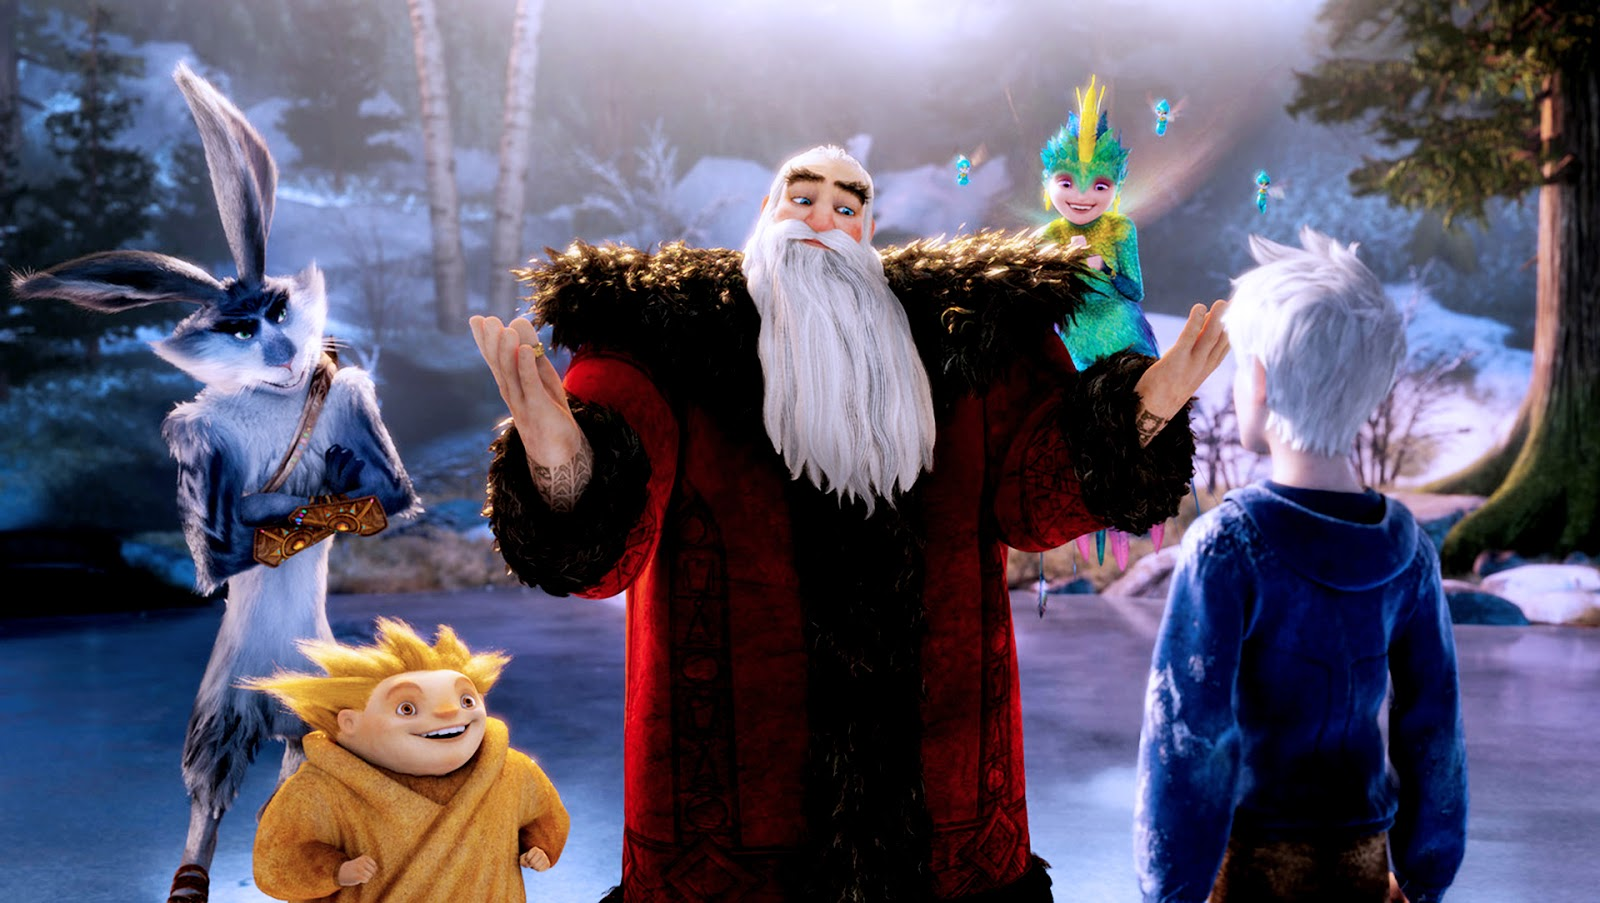 rise of the guardians full movie in hindi hd watch online